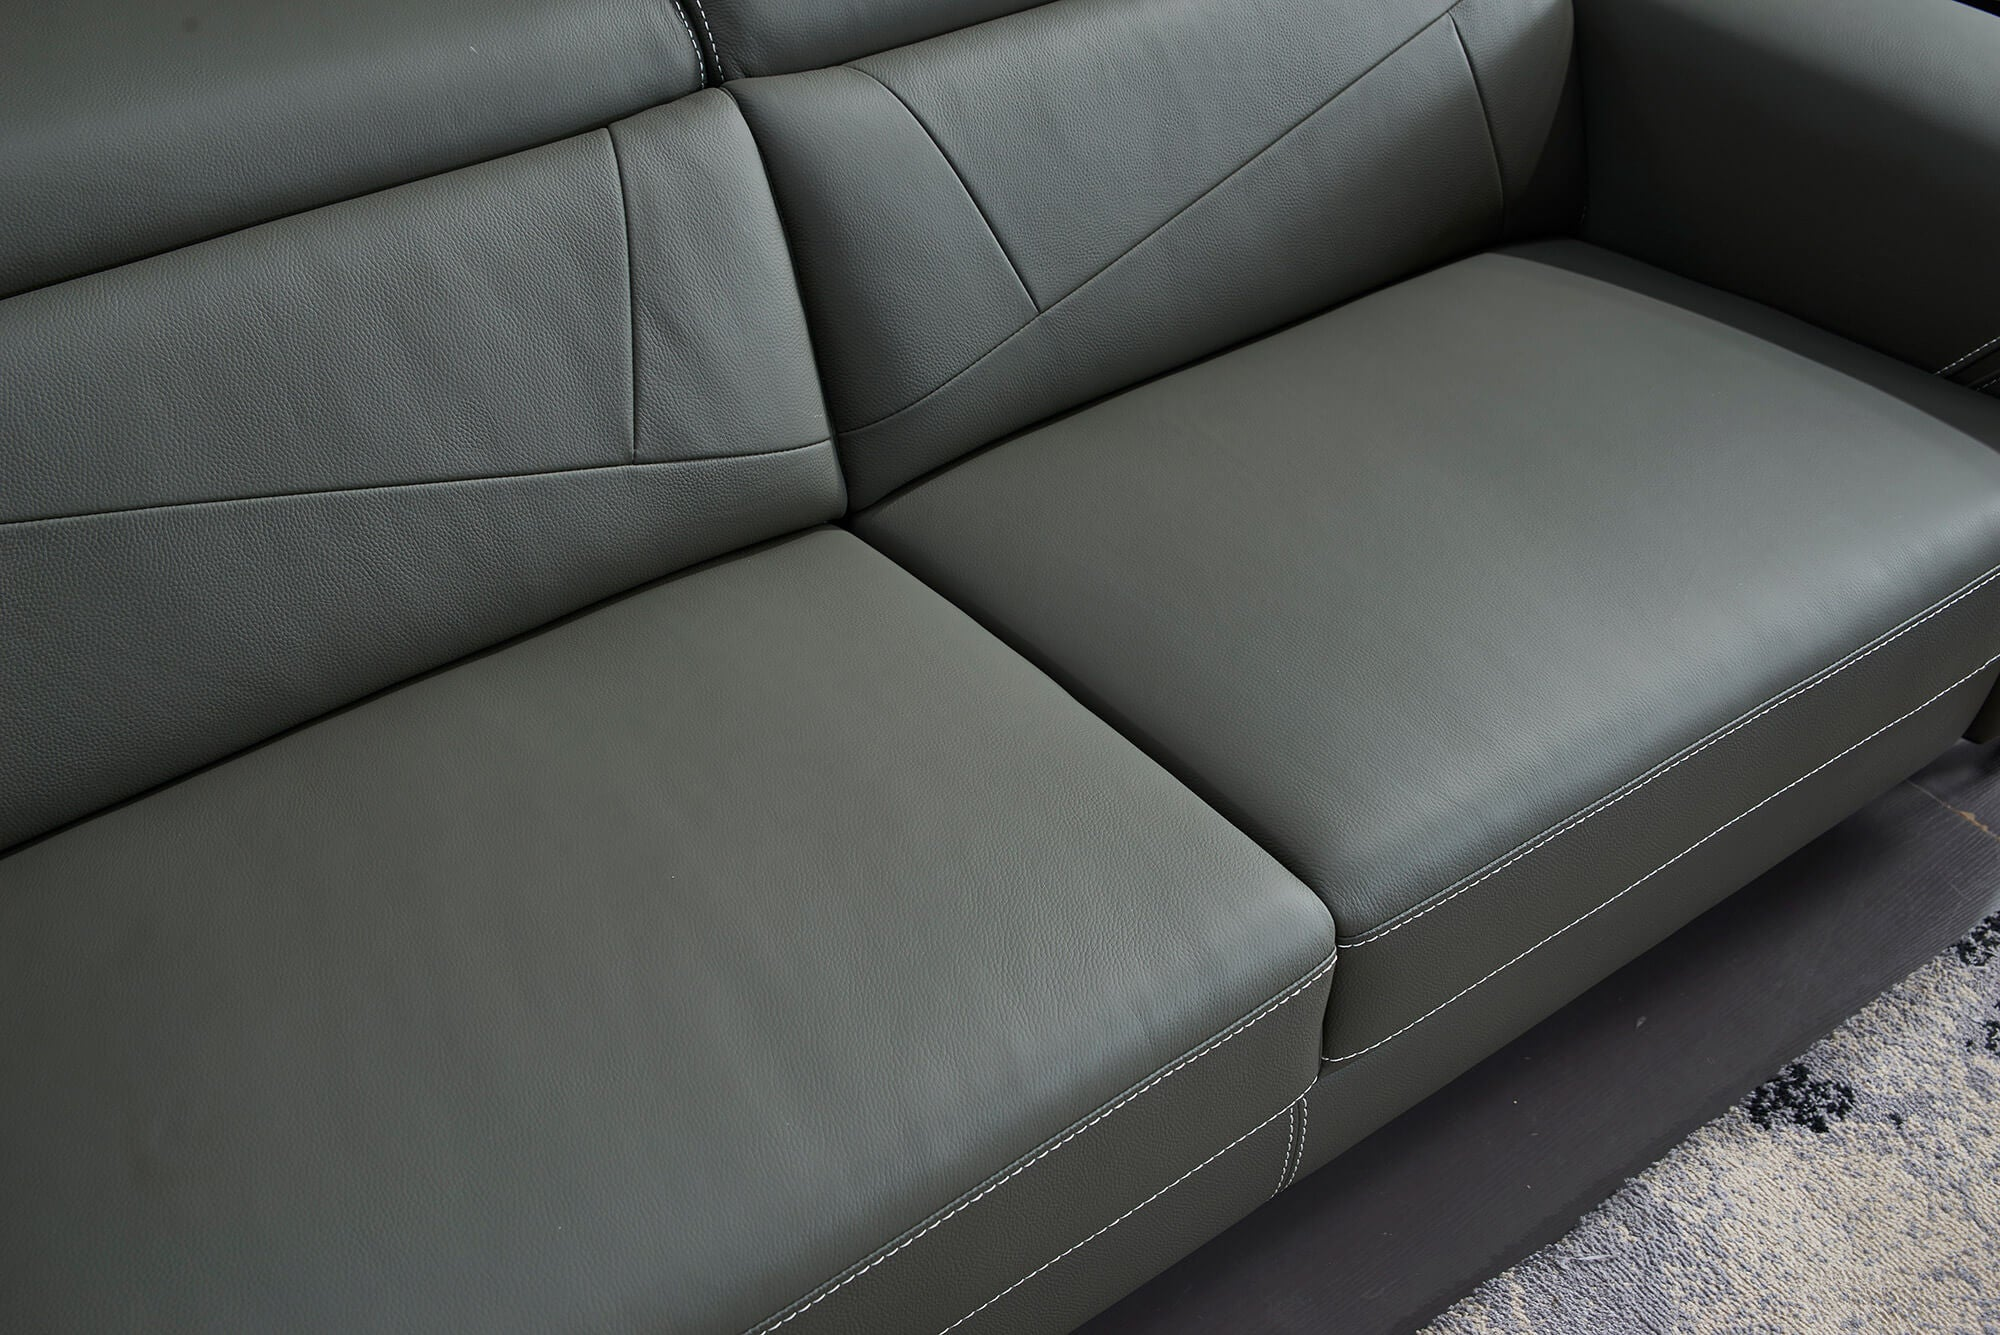 grey leather electric recliner 2 seater cushion closeup